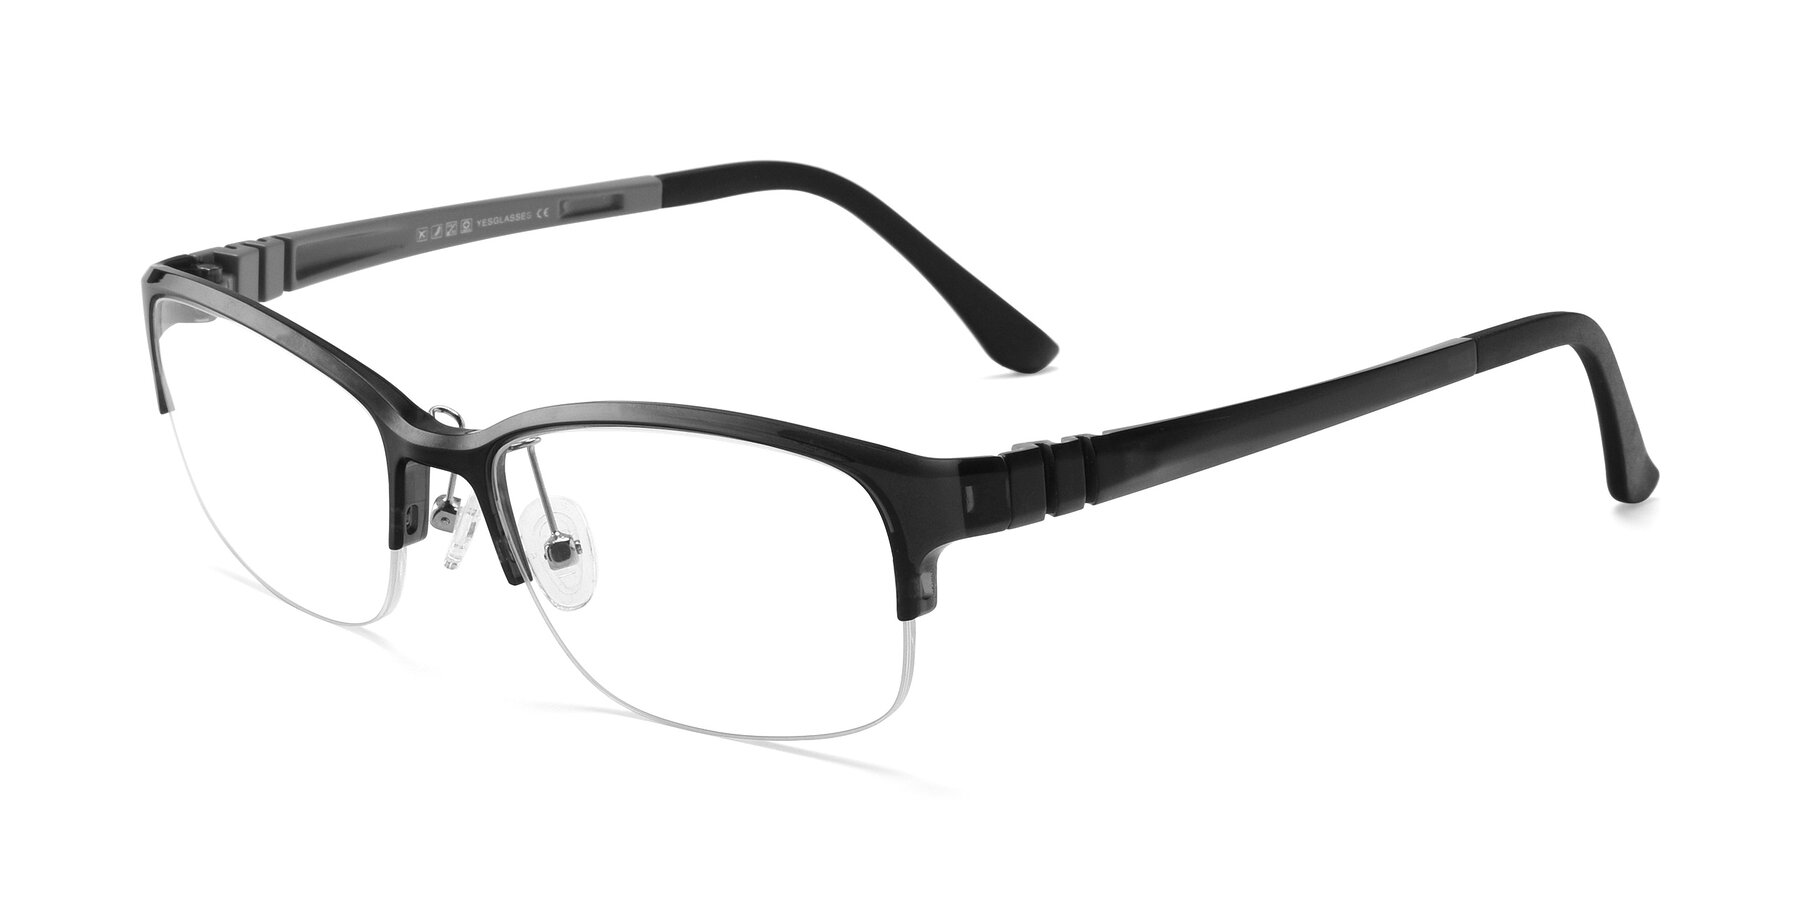 Angle of S7043 in Gray with Clear Eyeglass Lenses